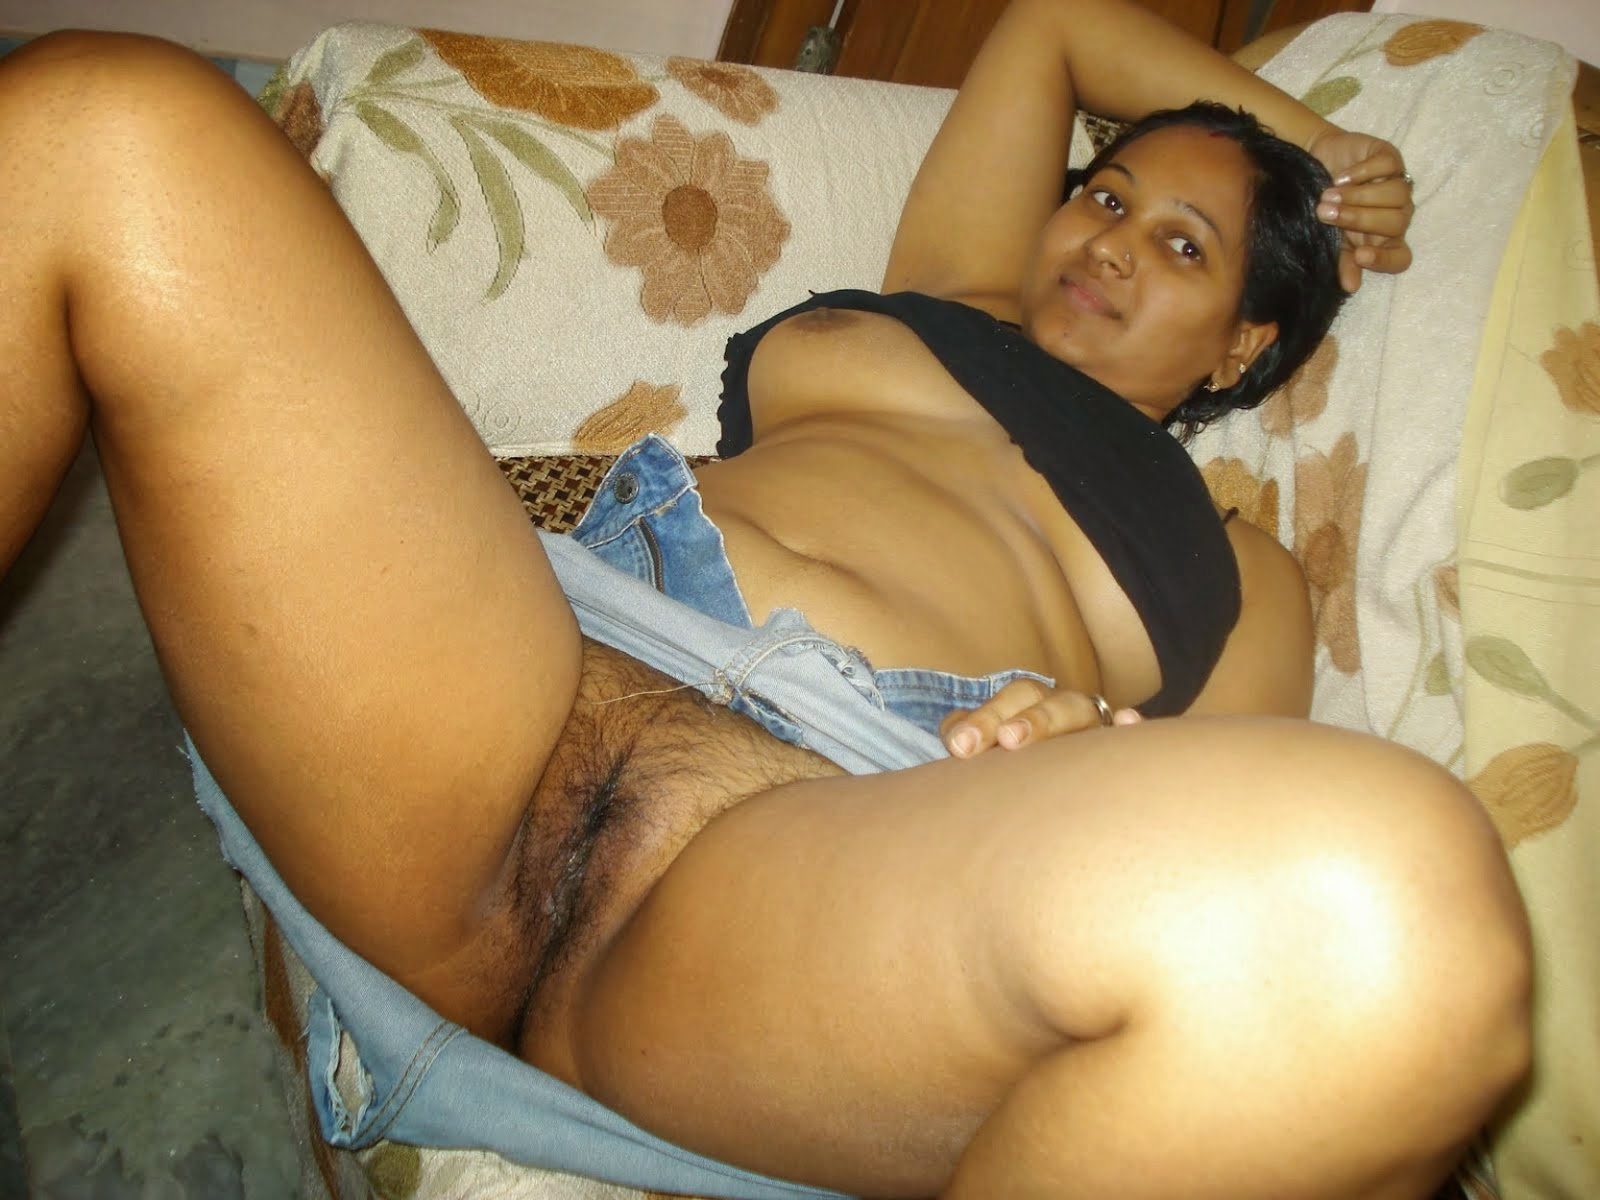 Hd big big photo pussy indian girl